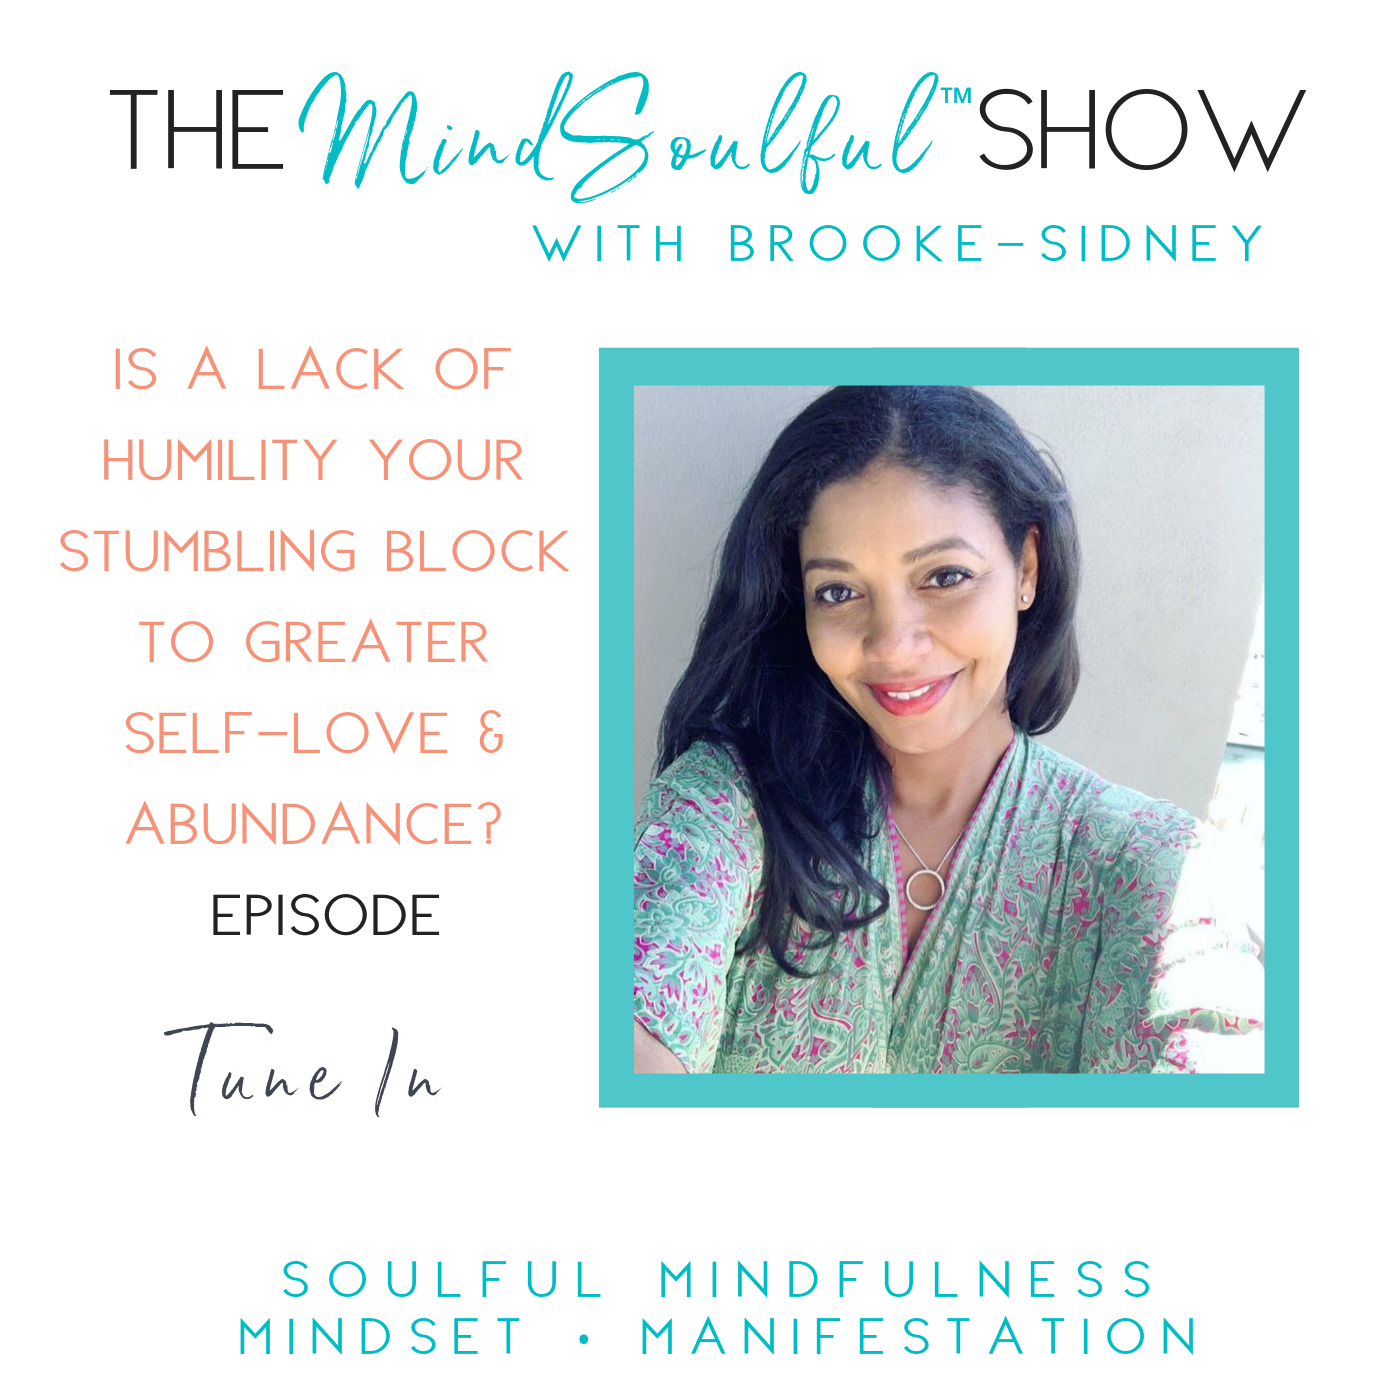 The MindSoulful Show - IS A LACK OF HUMILITY YOUR STUMBLING BLOCK TO GREATER SELF-LOVE & ABUNDANCE_ (1).png